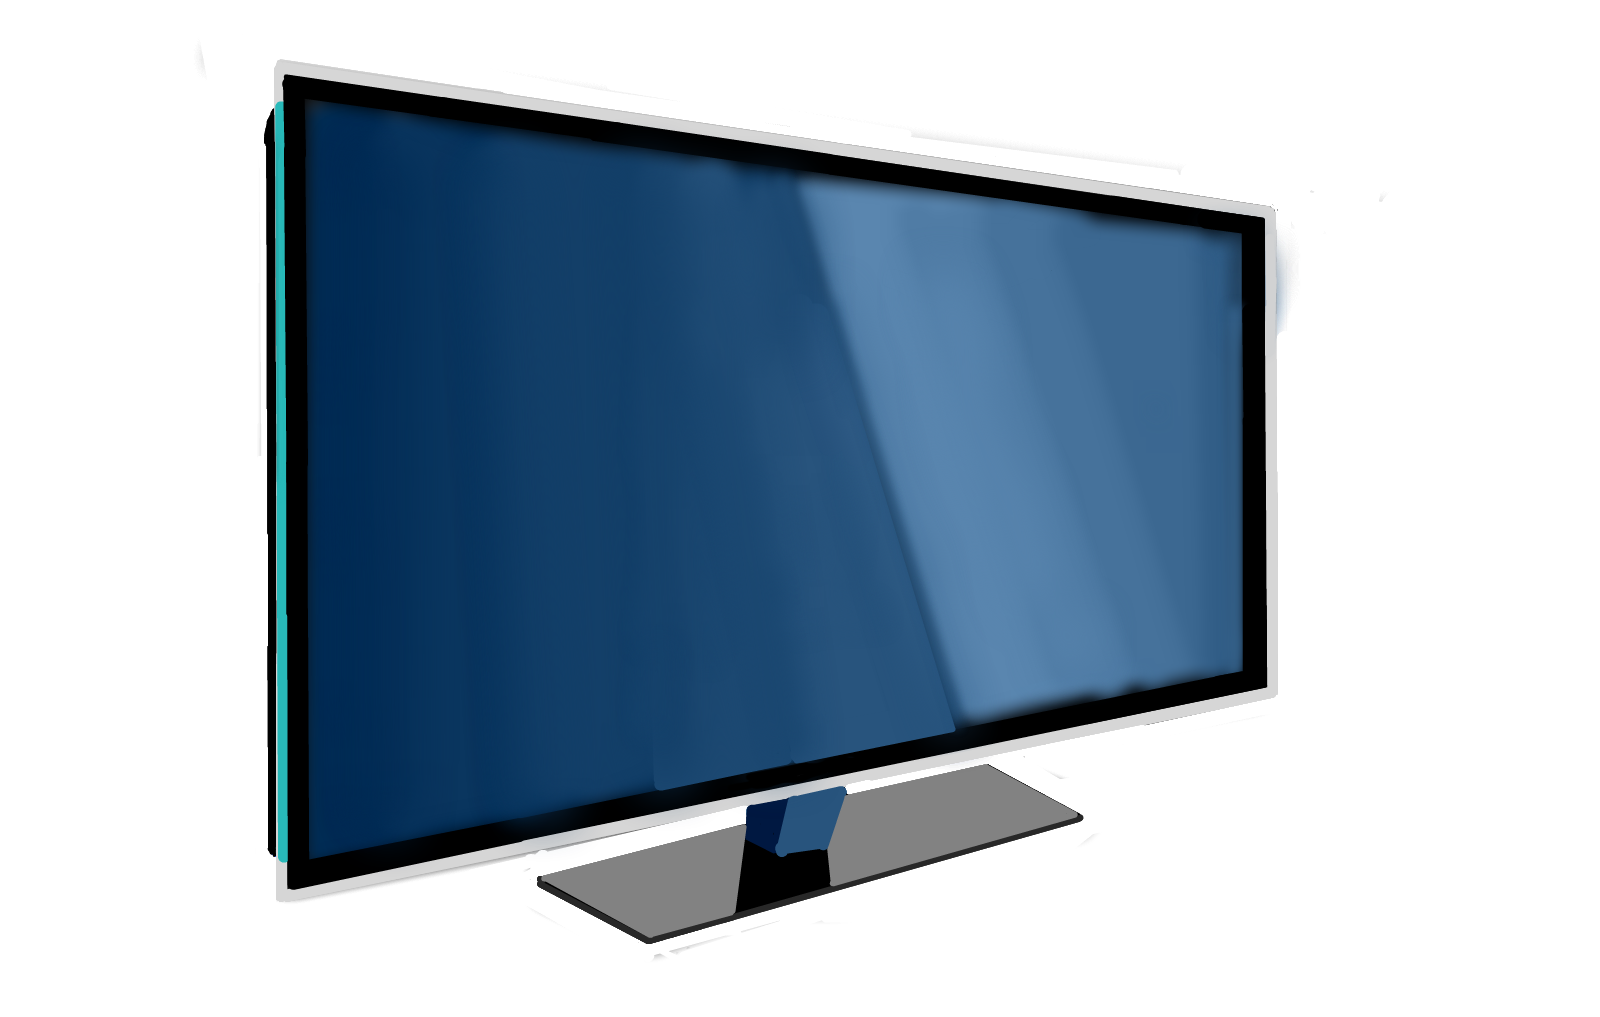 We recycle or remove TV's and other electronics.